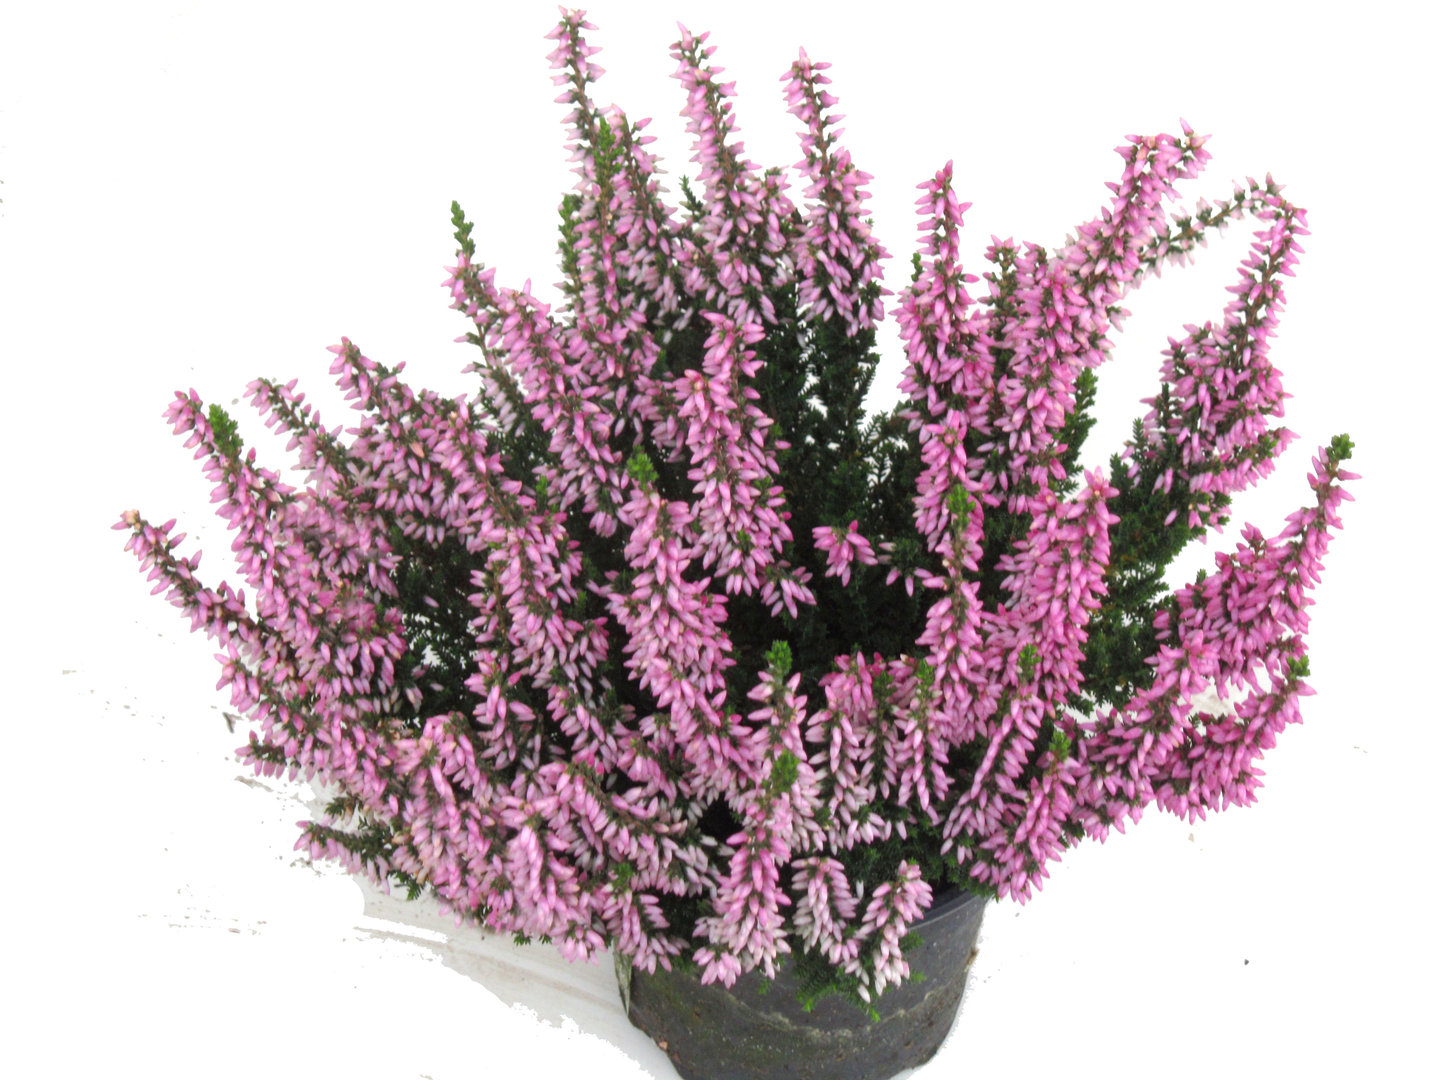 calluna vulgaris besenheide heidekraut rosa 10 cm topf. Black Bedroom Furniture Sets. Home Design Ideas